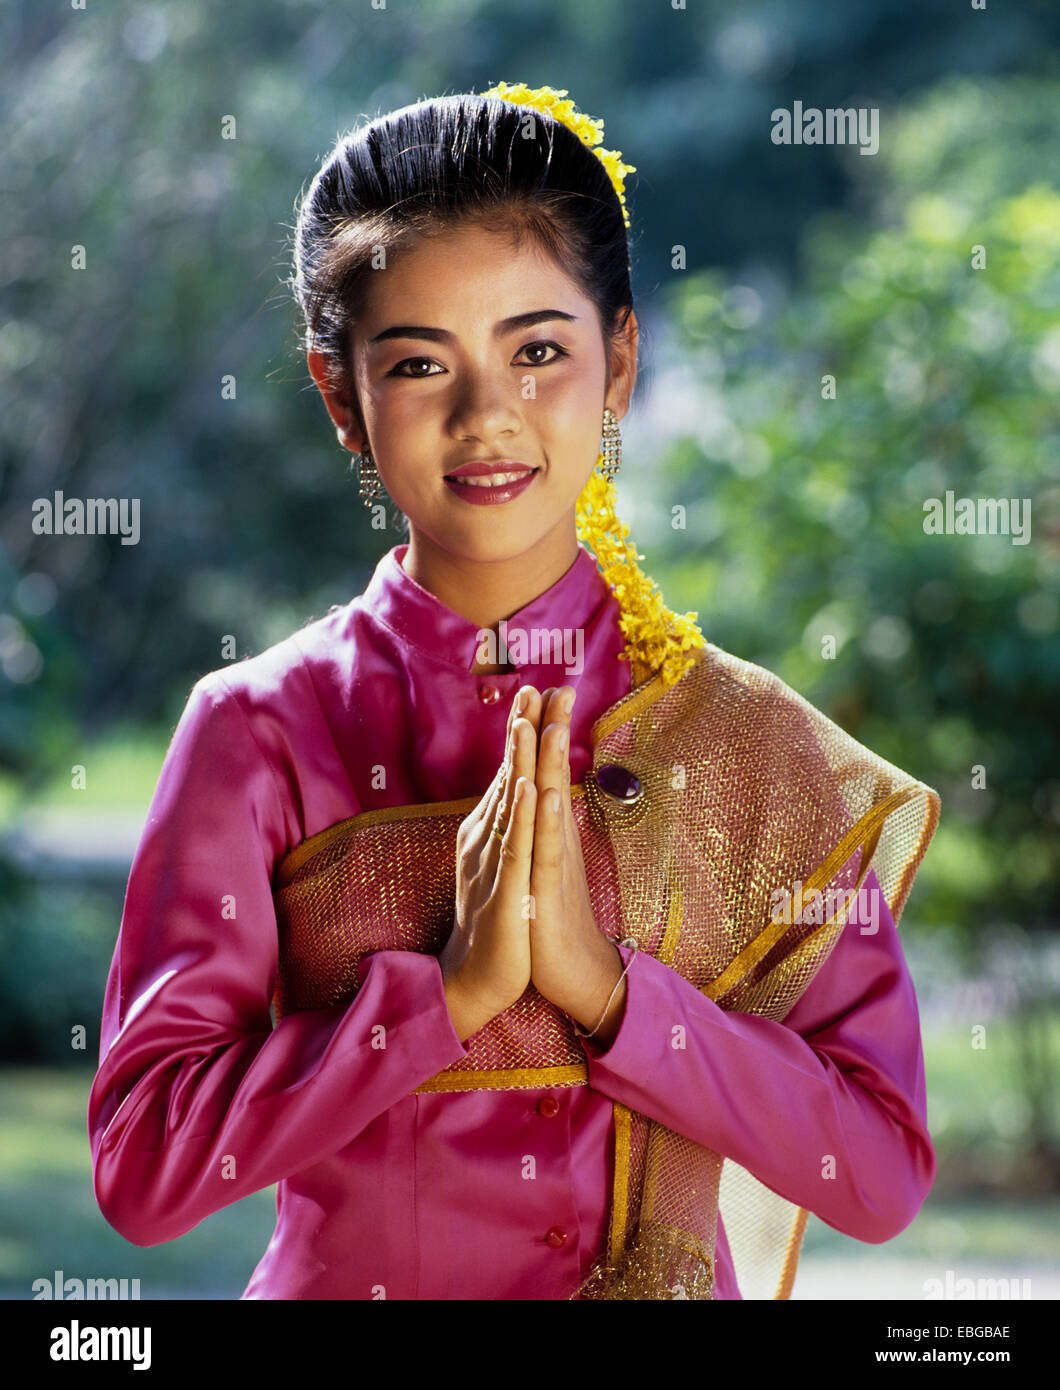 Thai wai greeting stock photos thai wai greeting stock images alamy the wai a thai gesture of greeting young woman wearing a traditional costume m4hsunfo